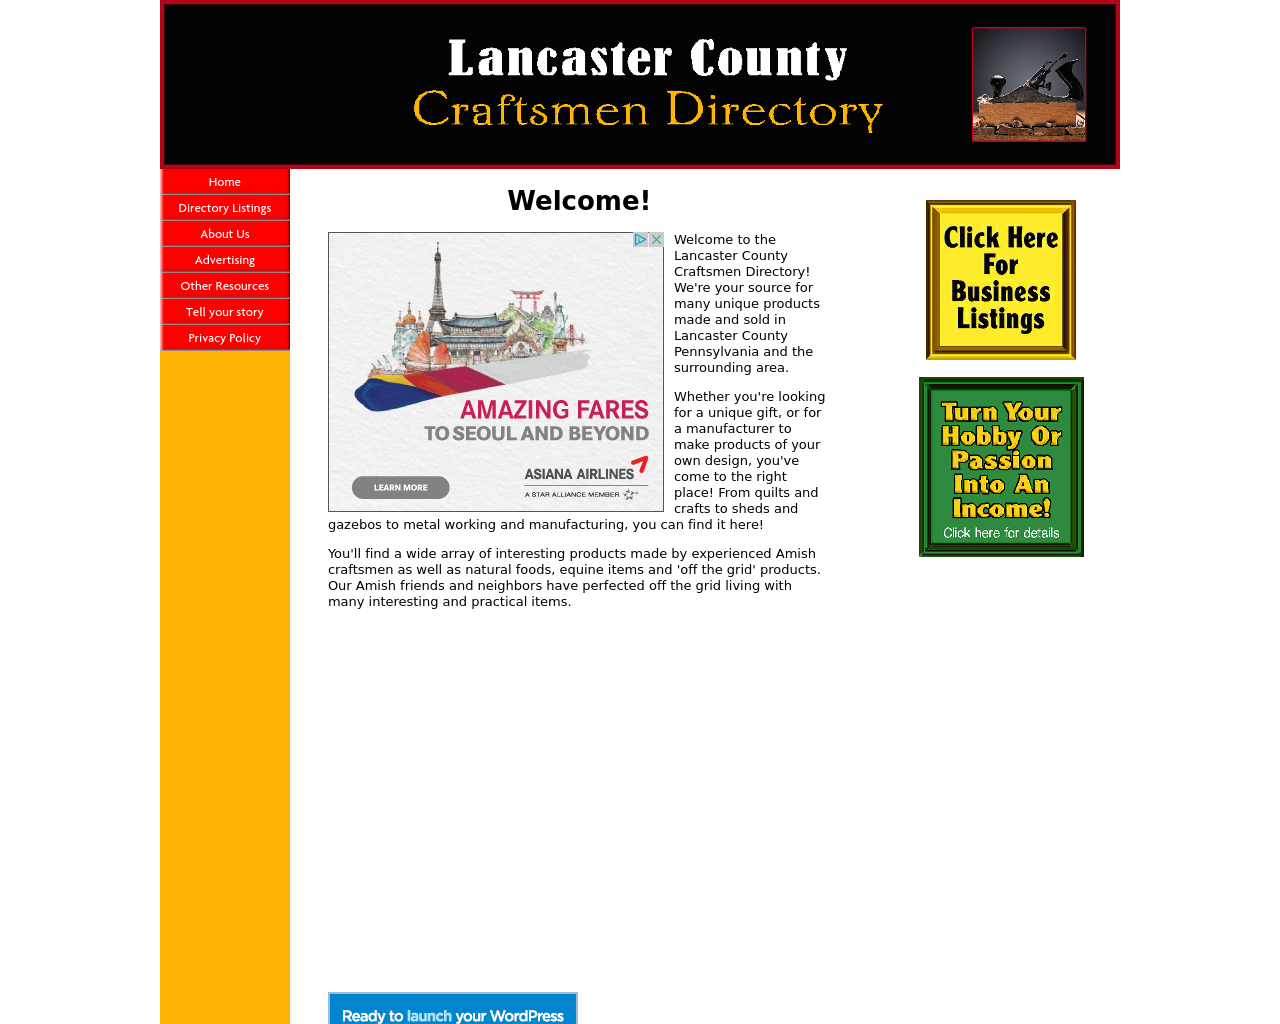 LancasterCountyCraftsmenDirectory-Advertising-Reviews-Pricing